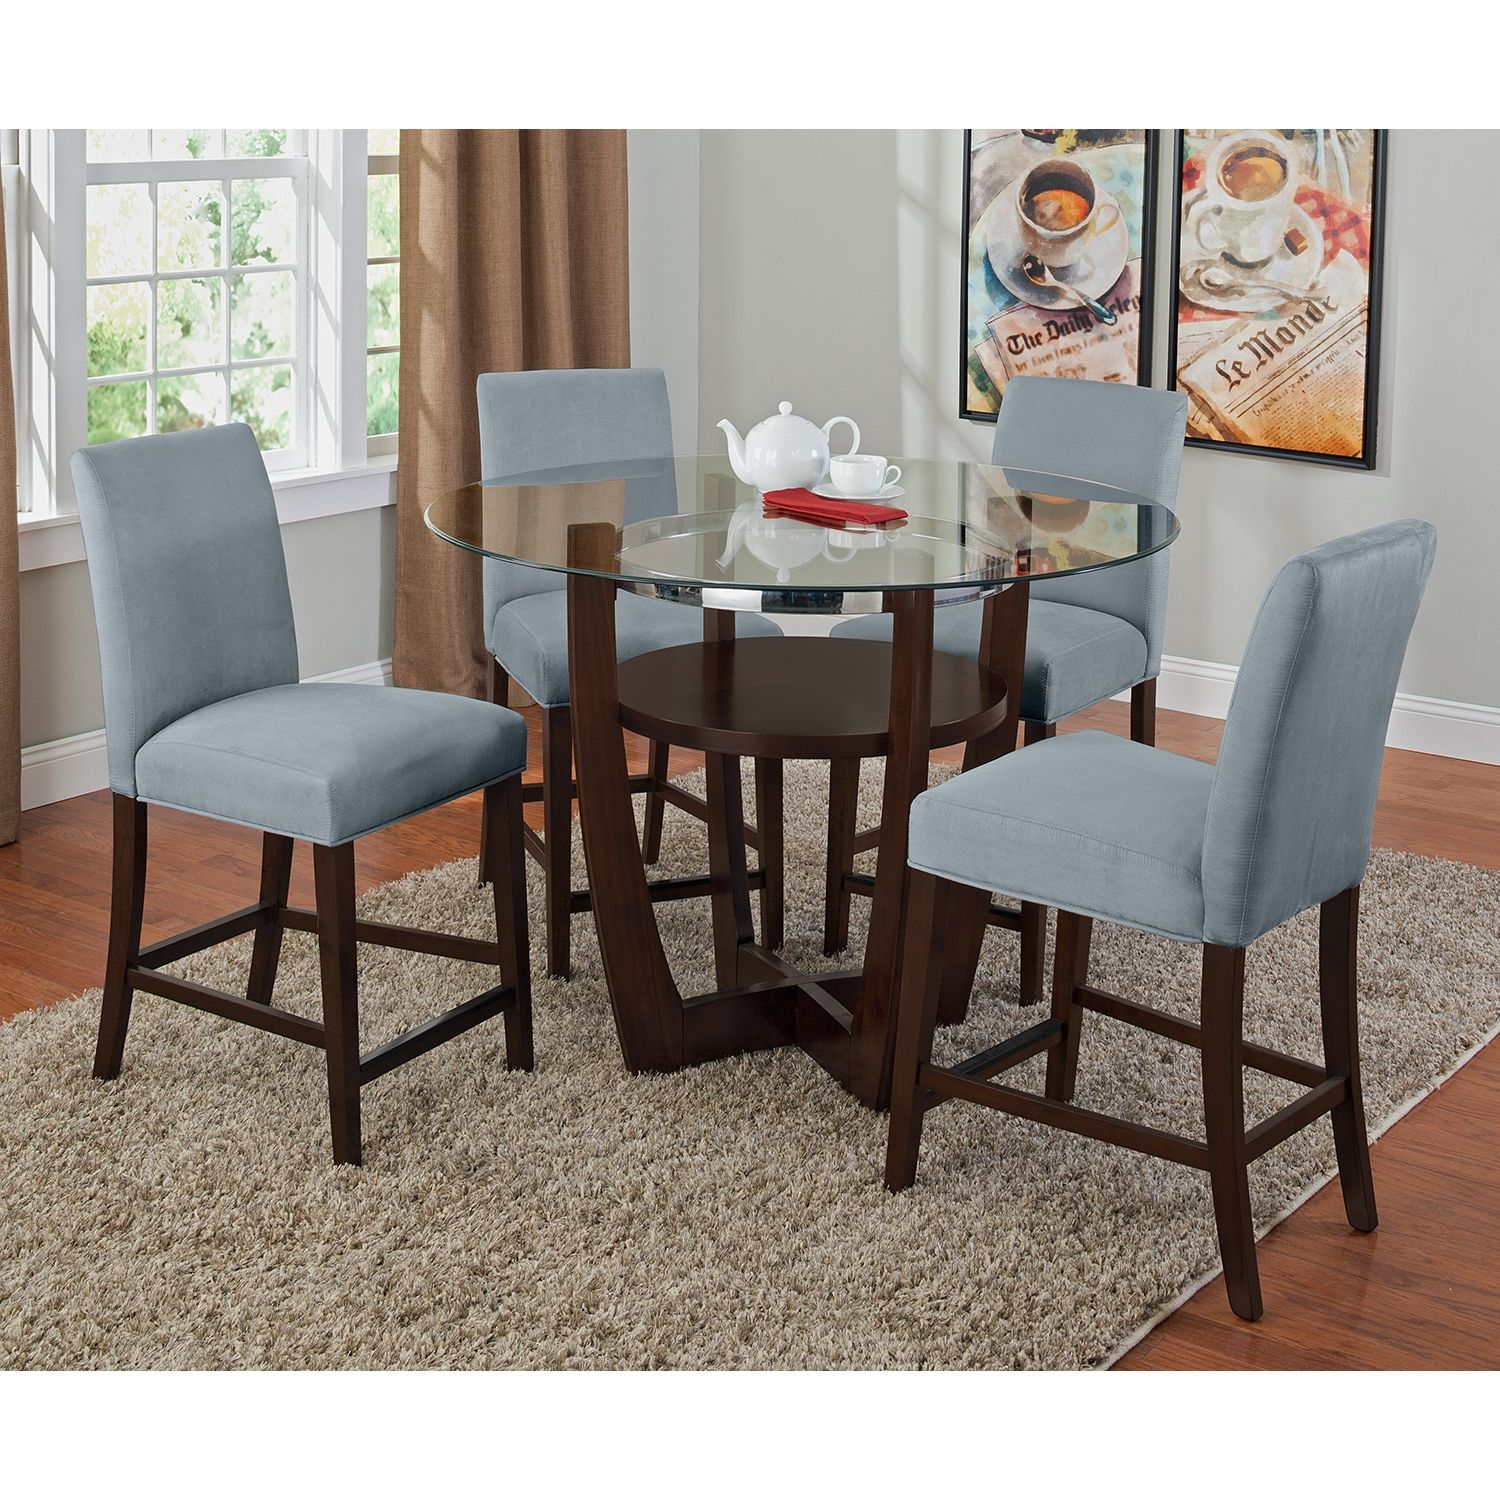 Marvelous Glass Round Dining Table With Shelves And Grey Vinyl Upholstered  Counter Height Stools Dining Set Good Looking